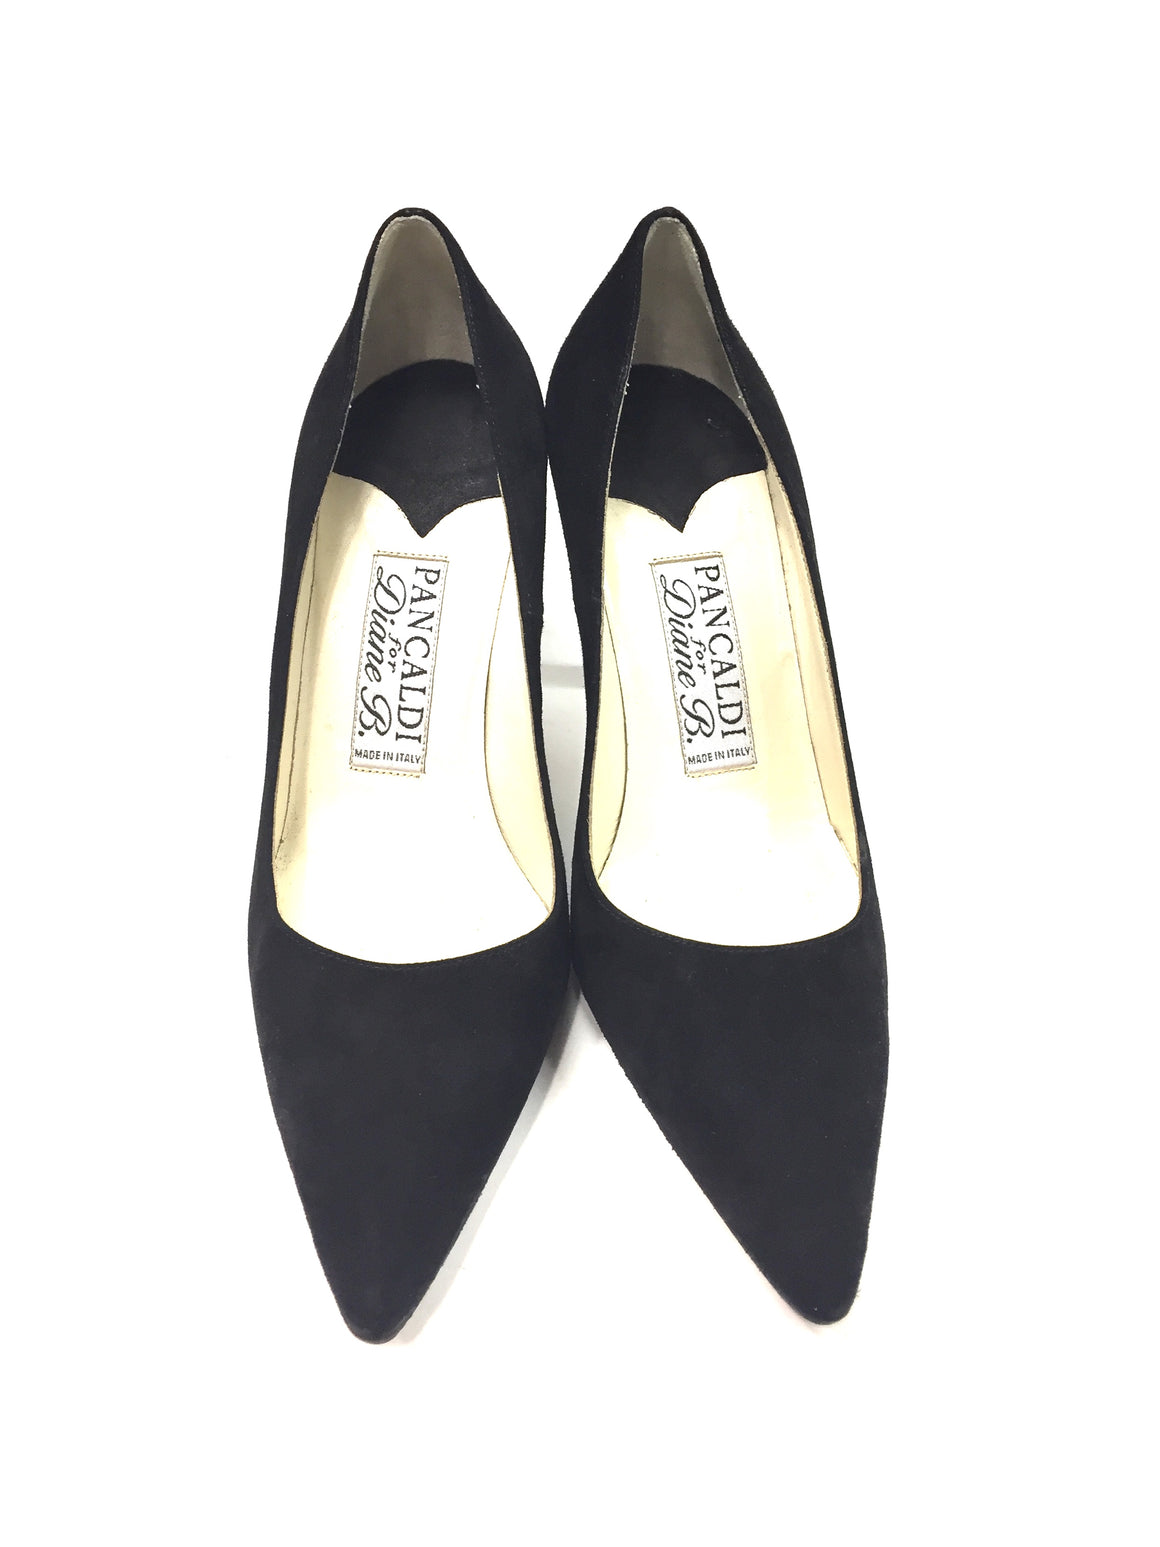 PANCALDI for DIANE B Black Suede pointed-Toe Classic Heel Pumps Shoes Sz38